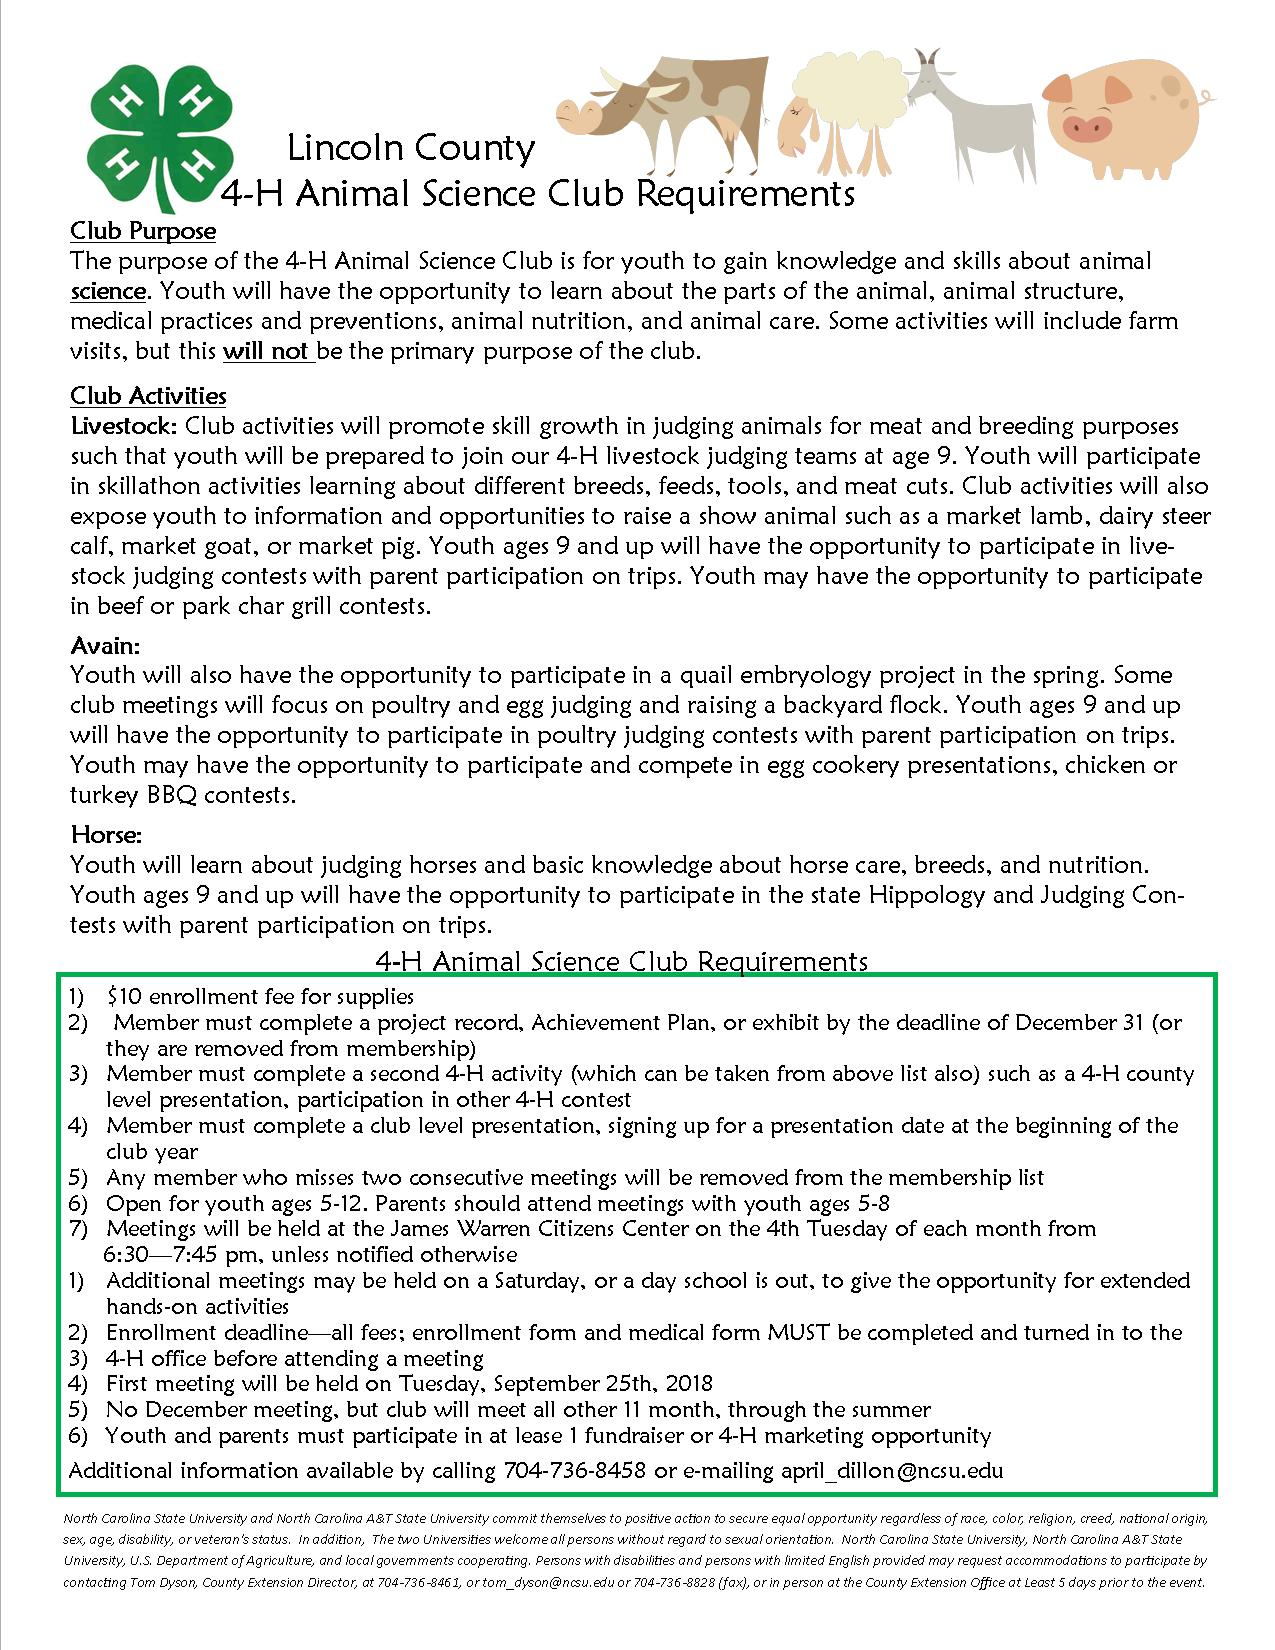 4-H Animal Science Club flyer image